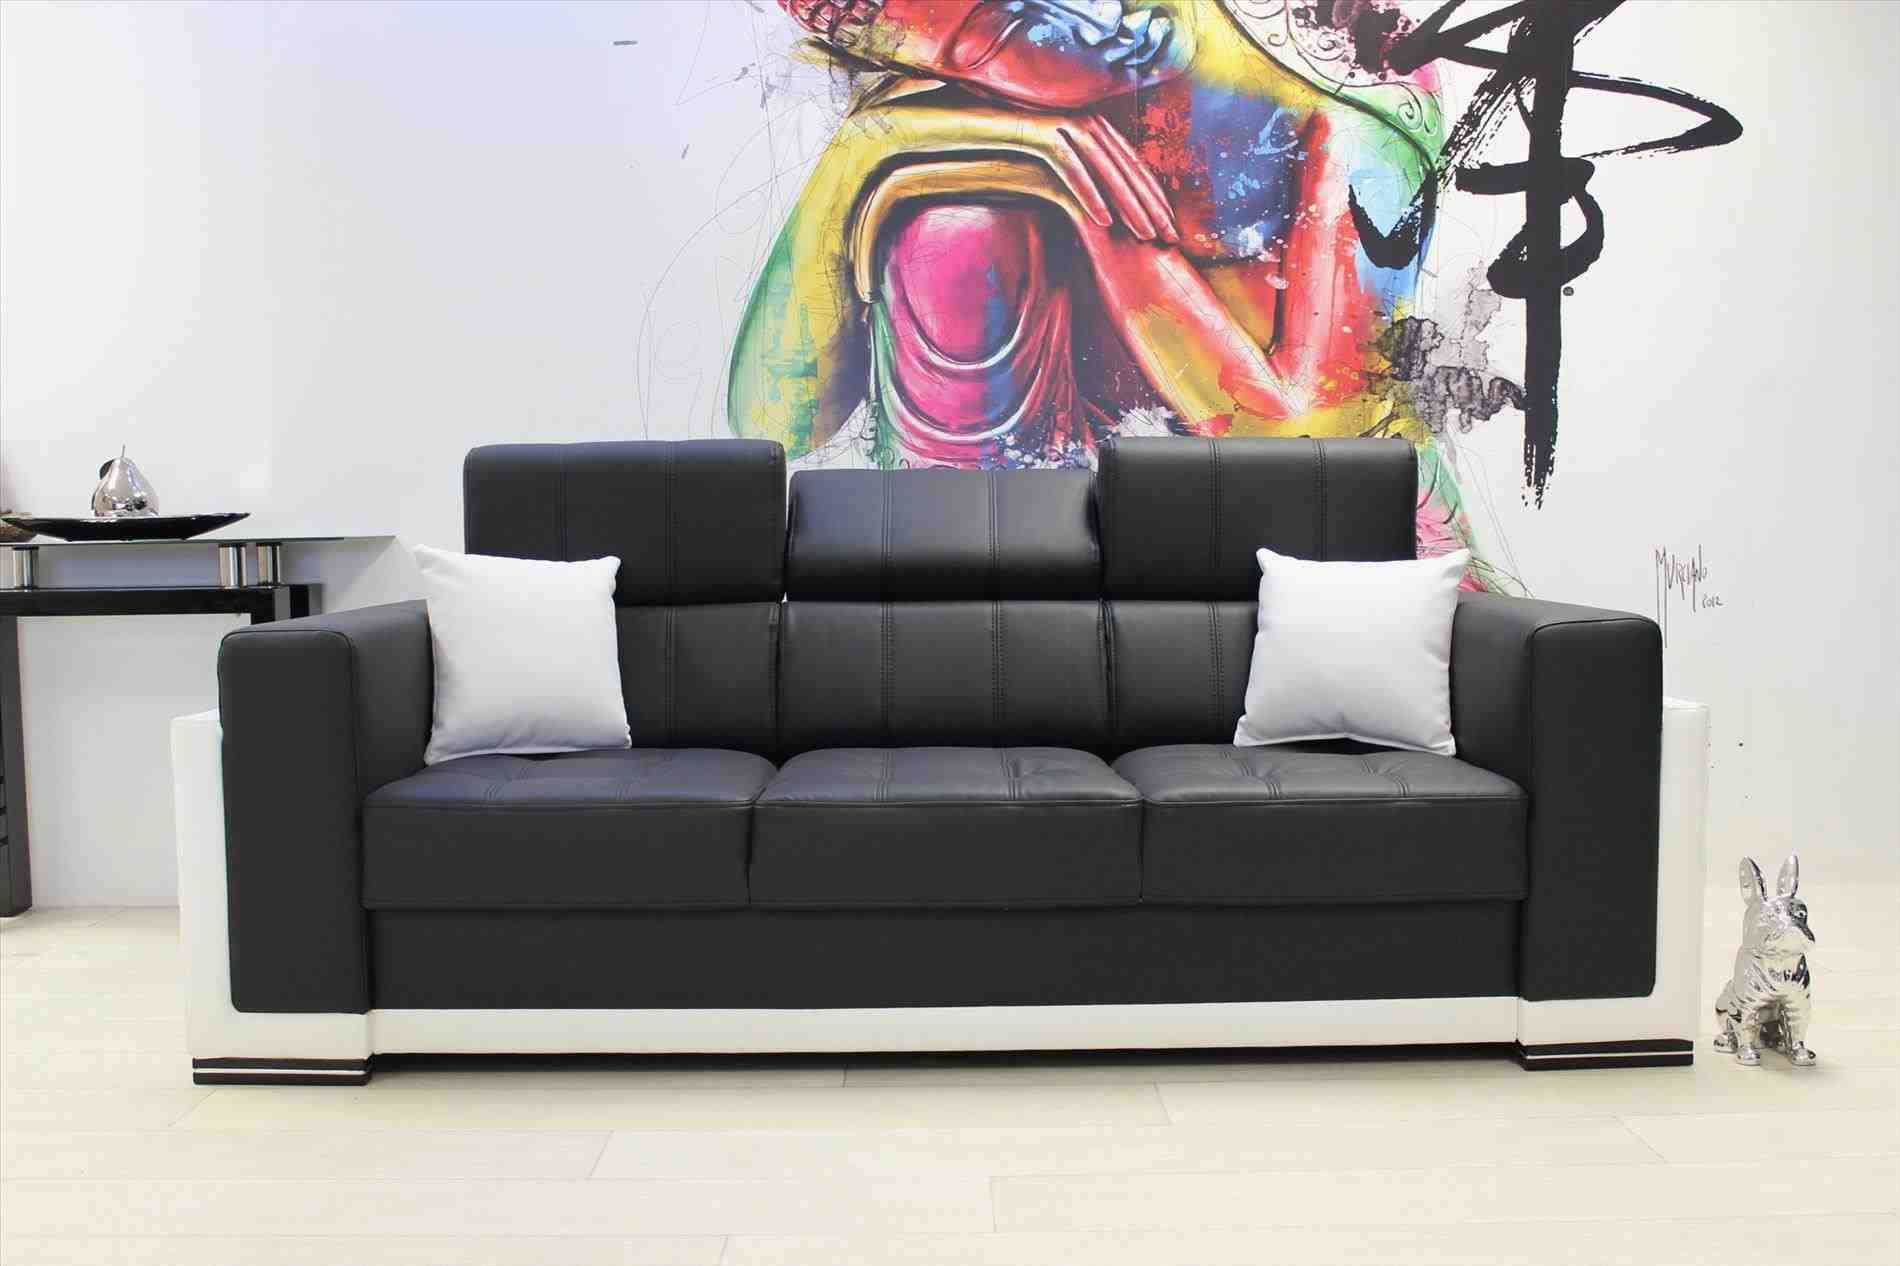 Cheap Sofa Glasgow Black Cheap Leather Sofas For Sale Corner Uk Sofa Beds Sydney Che Living Room Couch Placement Couches Living Room Diy Living Room Decor